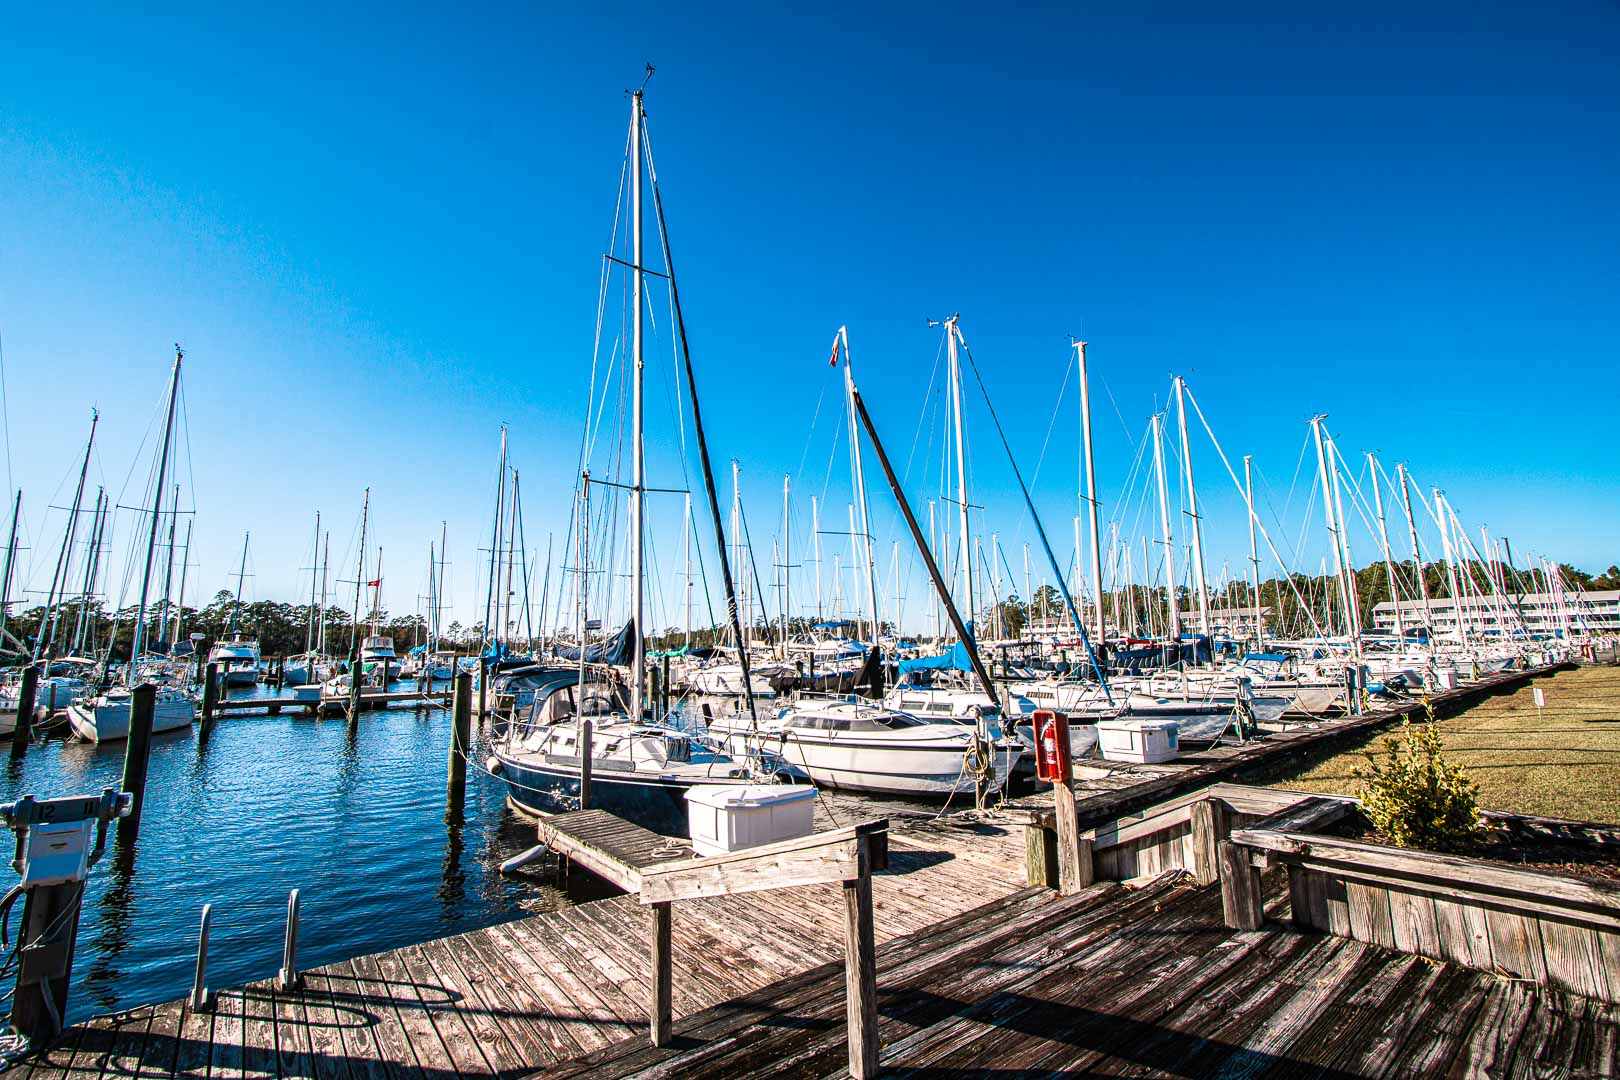 A scenic view of the boat dock at VRI's Waterwood Townhomes in New Bern, North Carolina.